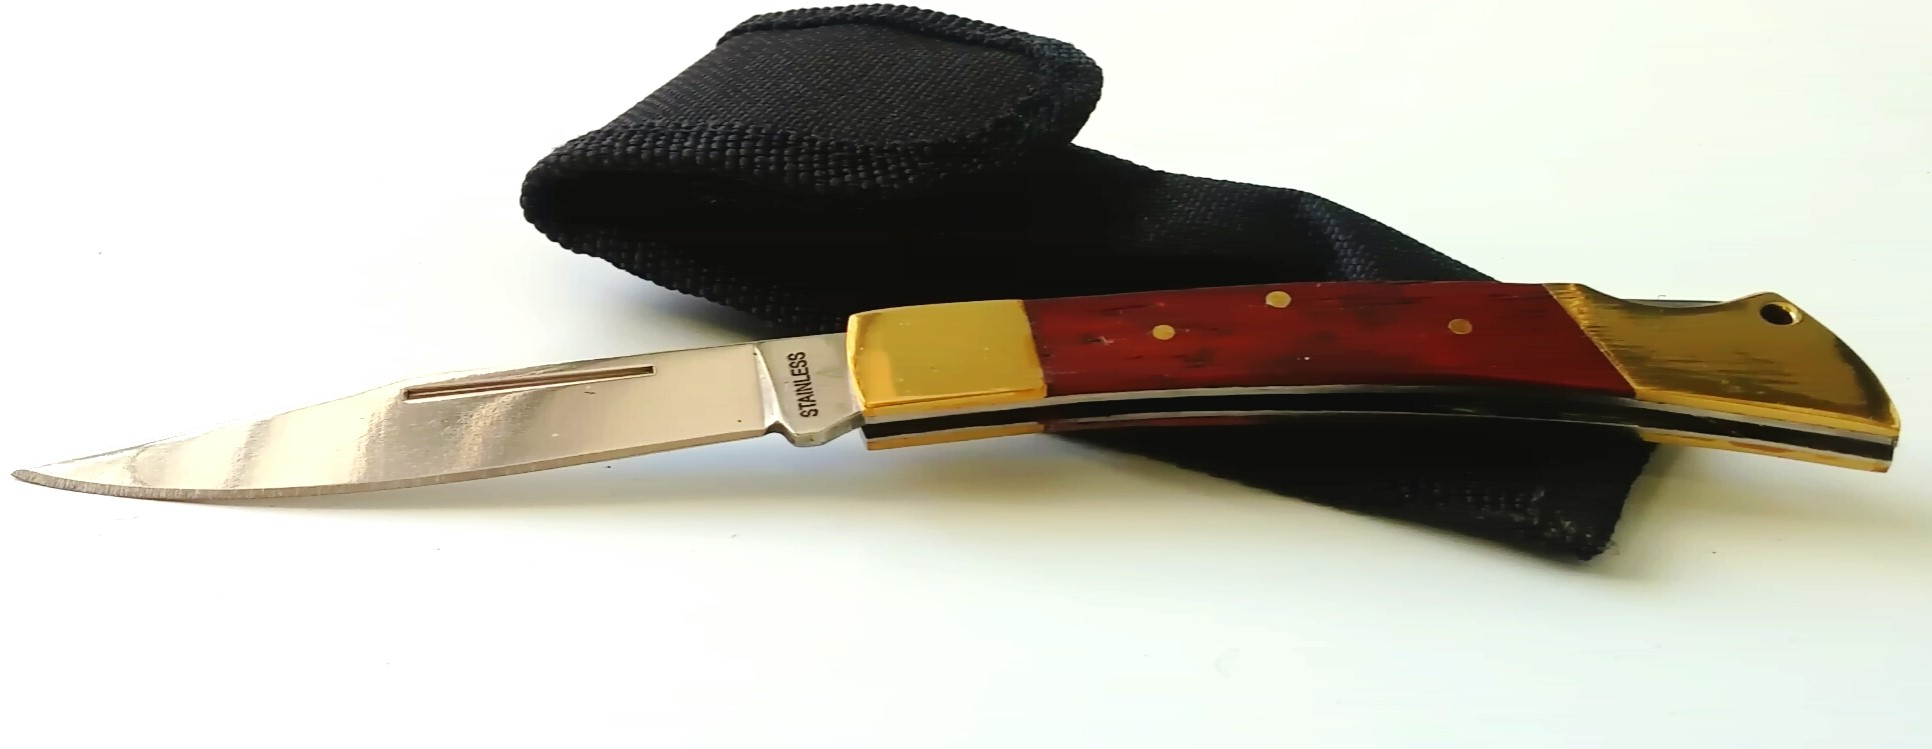 Folding knife style K701